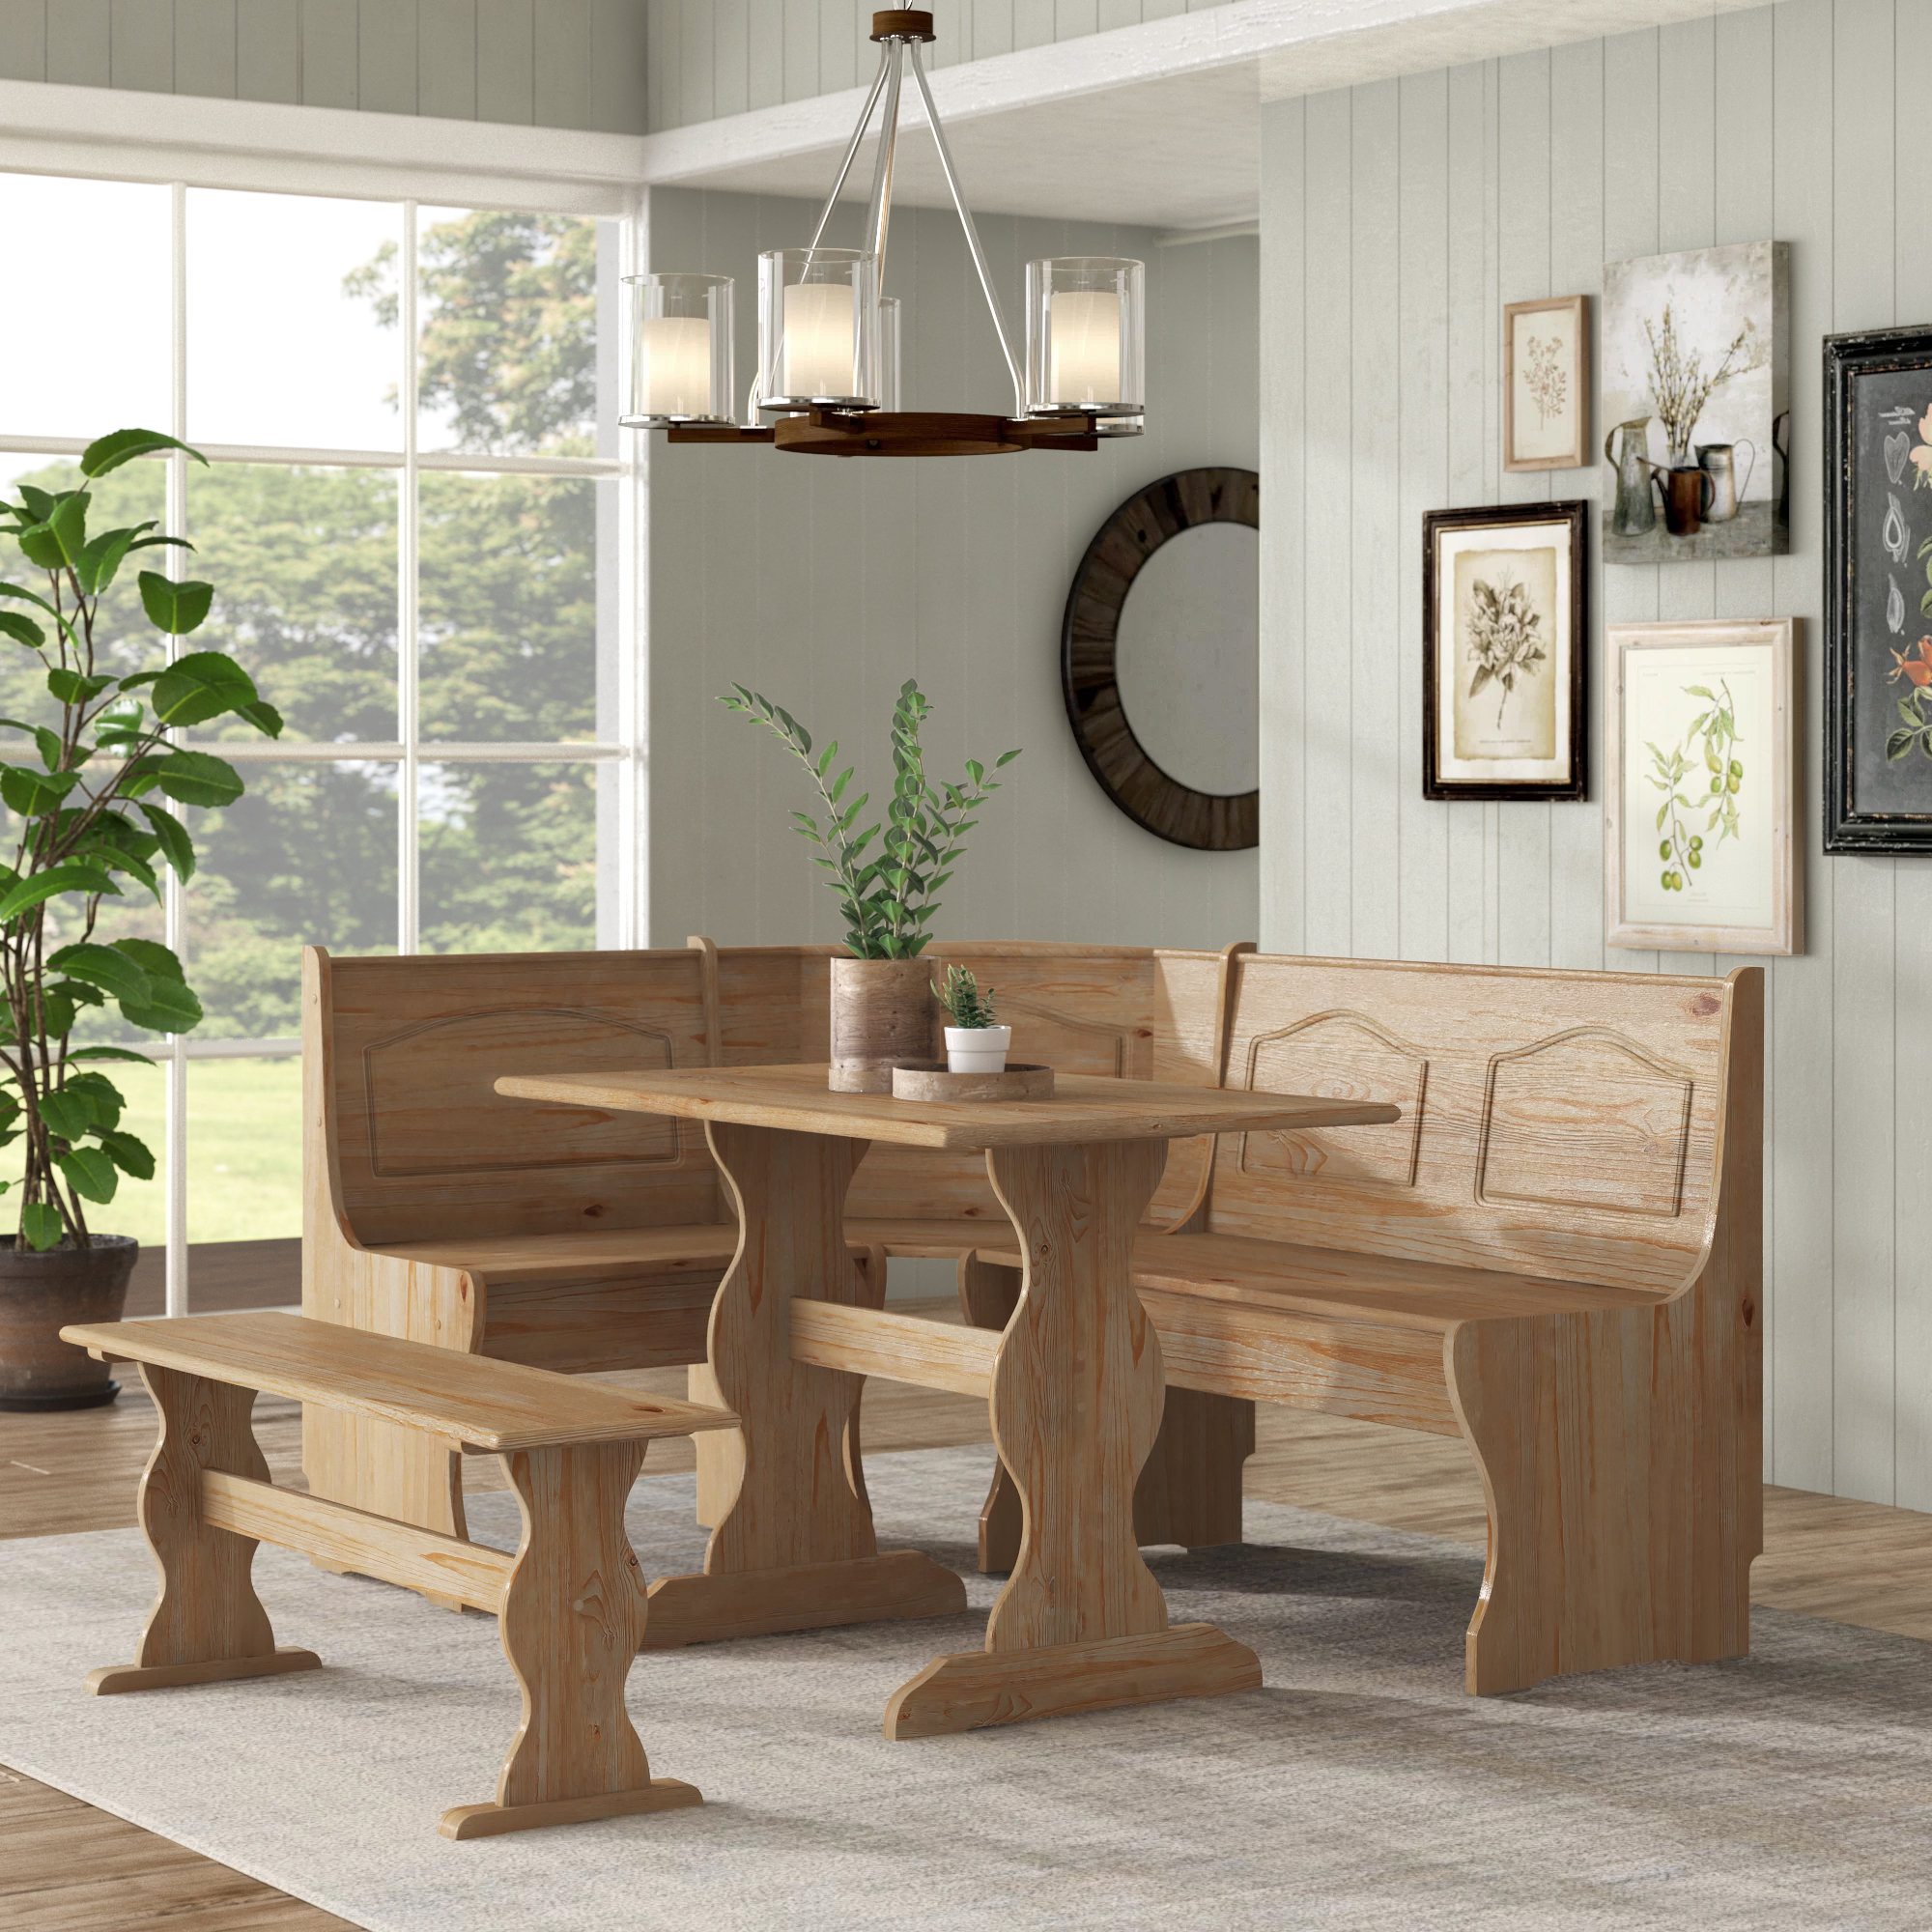 Current Padstow 3 Piece Breakfast Nook Dining Set Intended For 3 Piece Breakfast Nook Dinning Set (View 11 of 20)